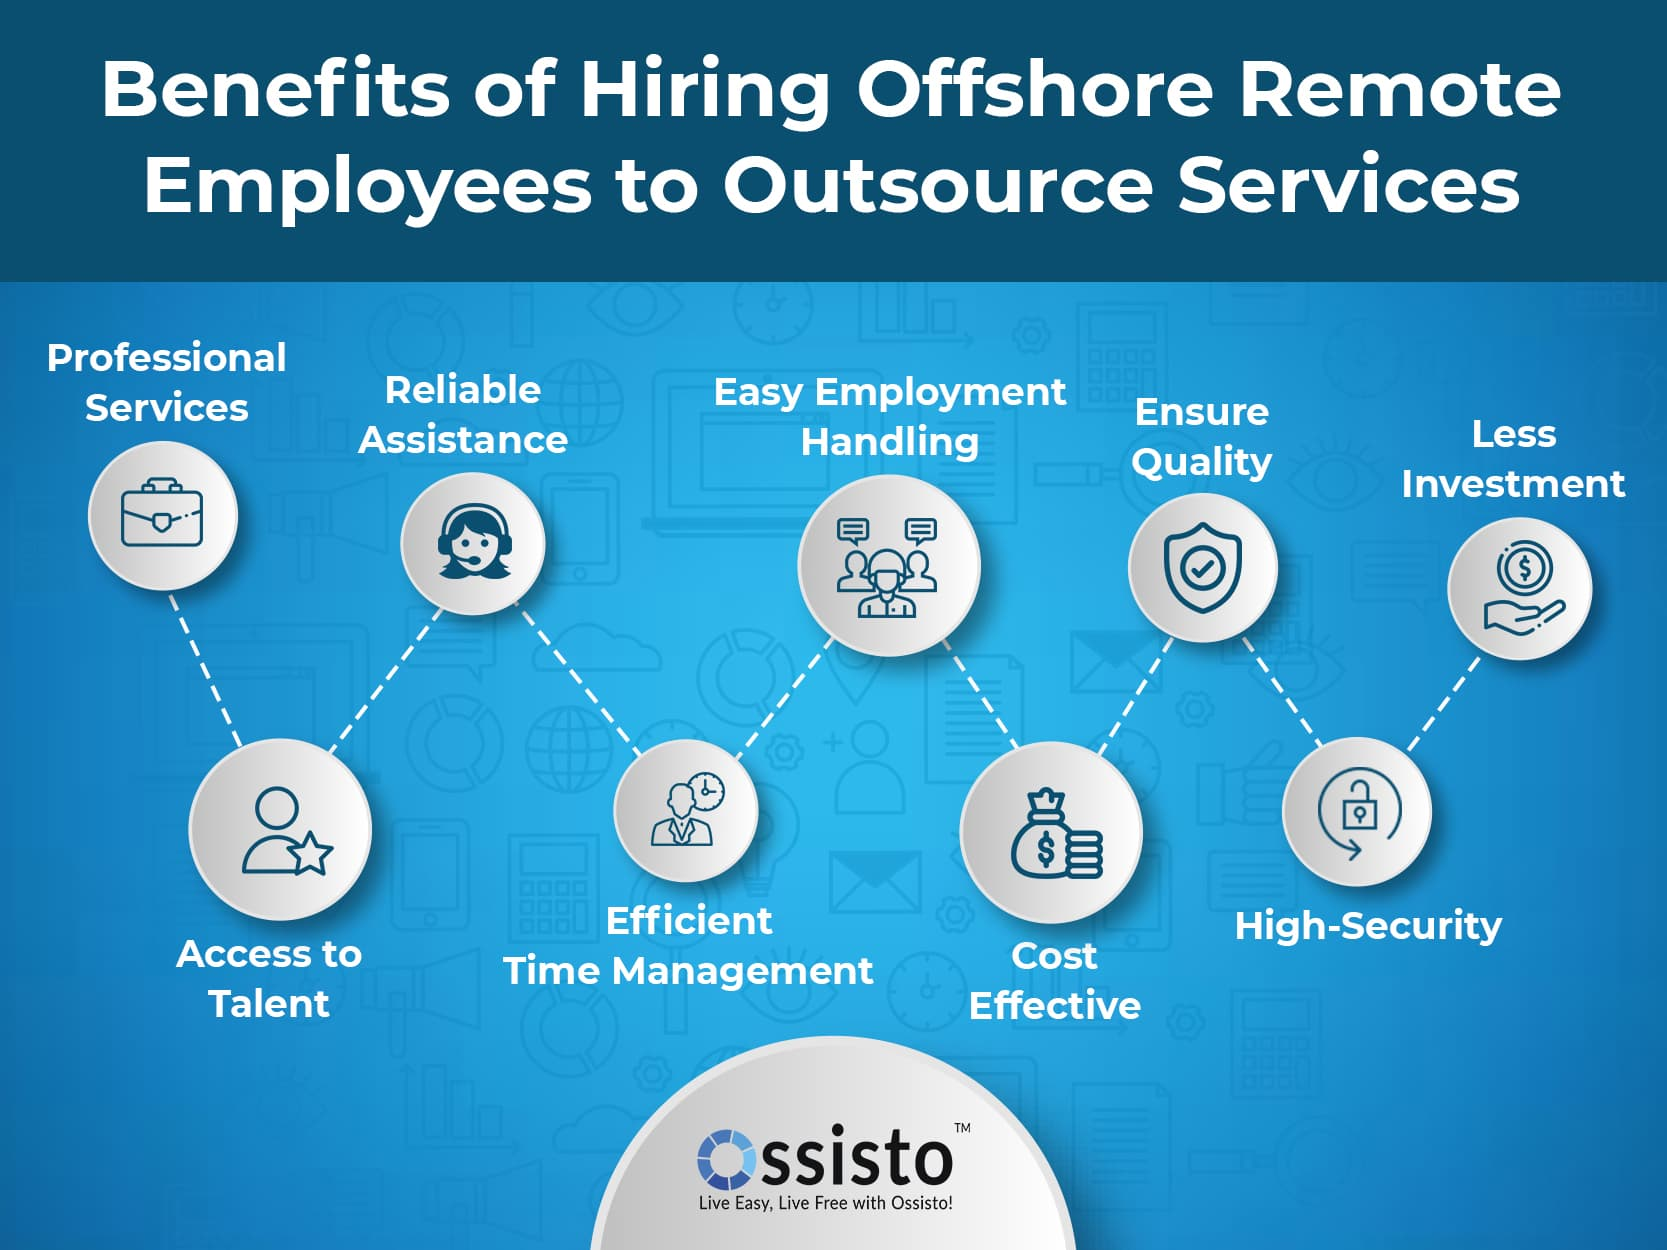 Benefits of Hiring Offshore Employees